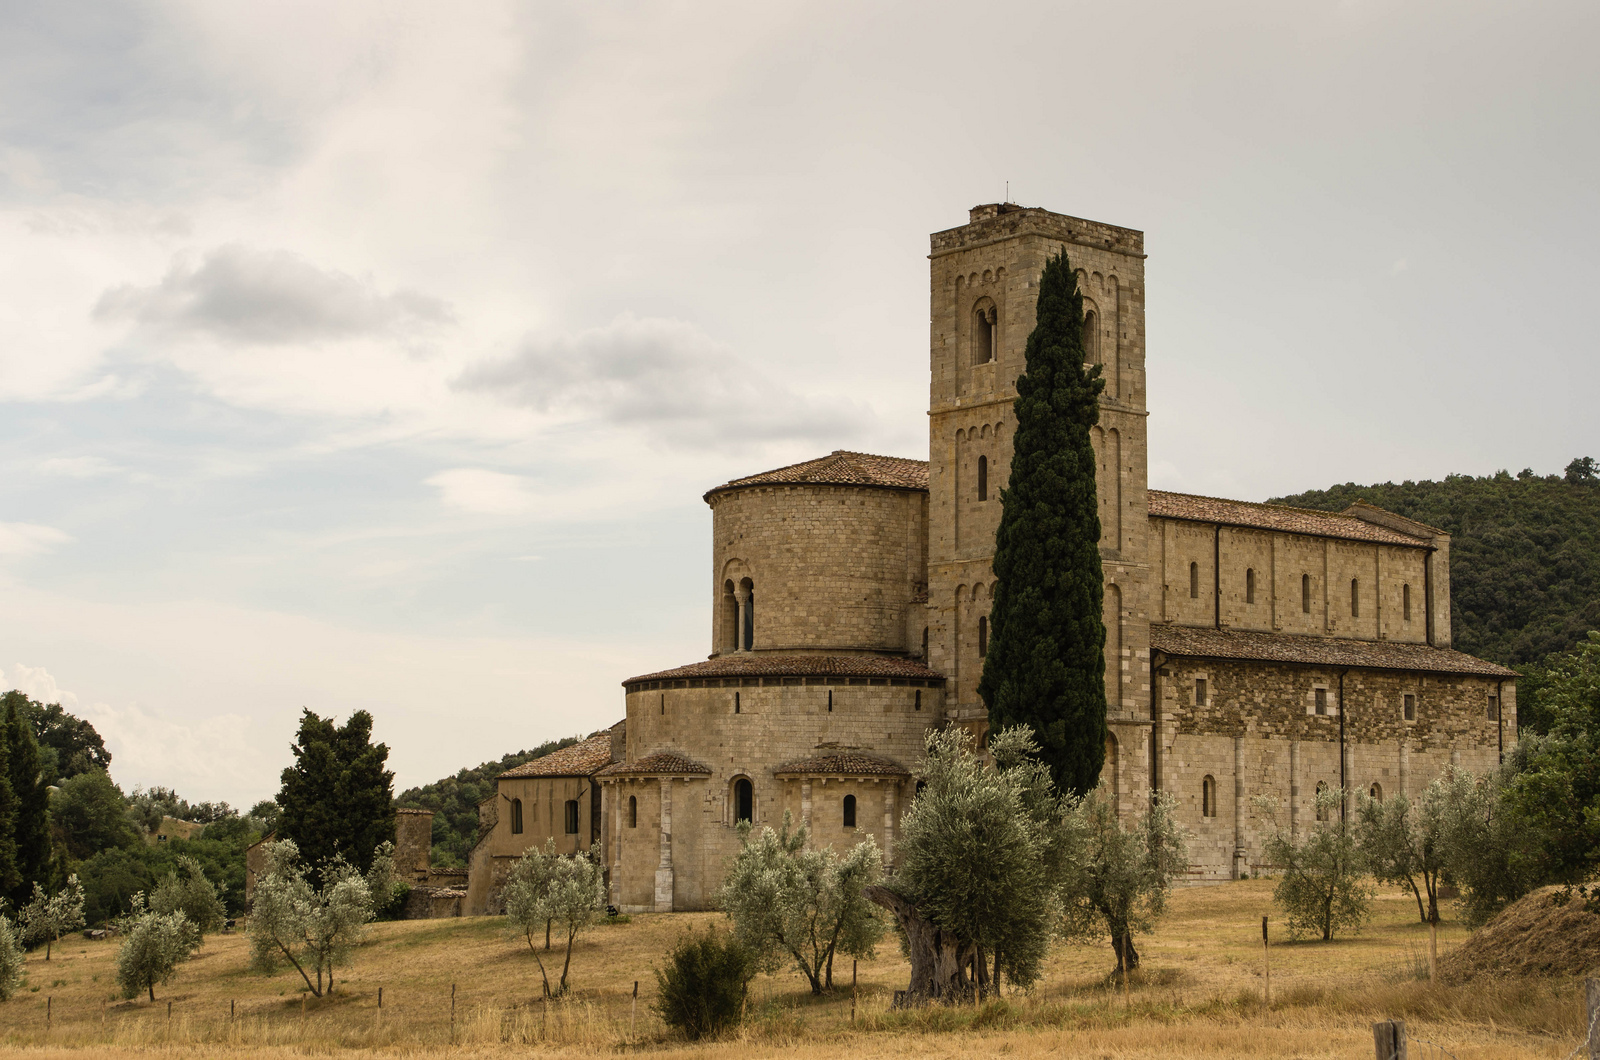 Abbey of Sant'Antimo [Photo Credits: Ale S.]